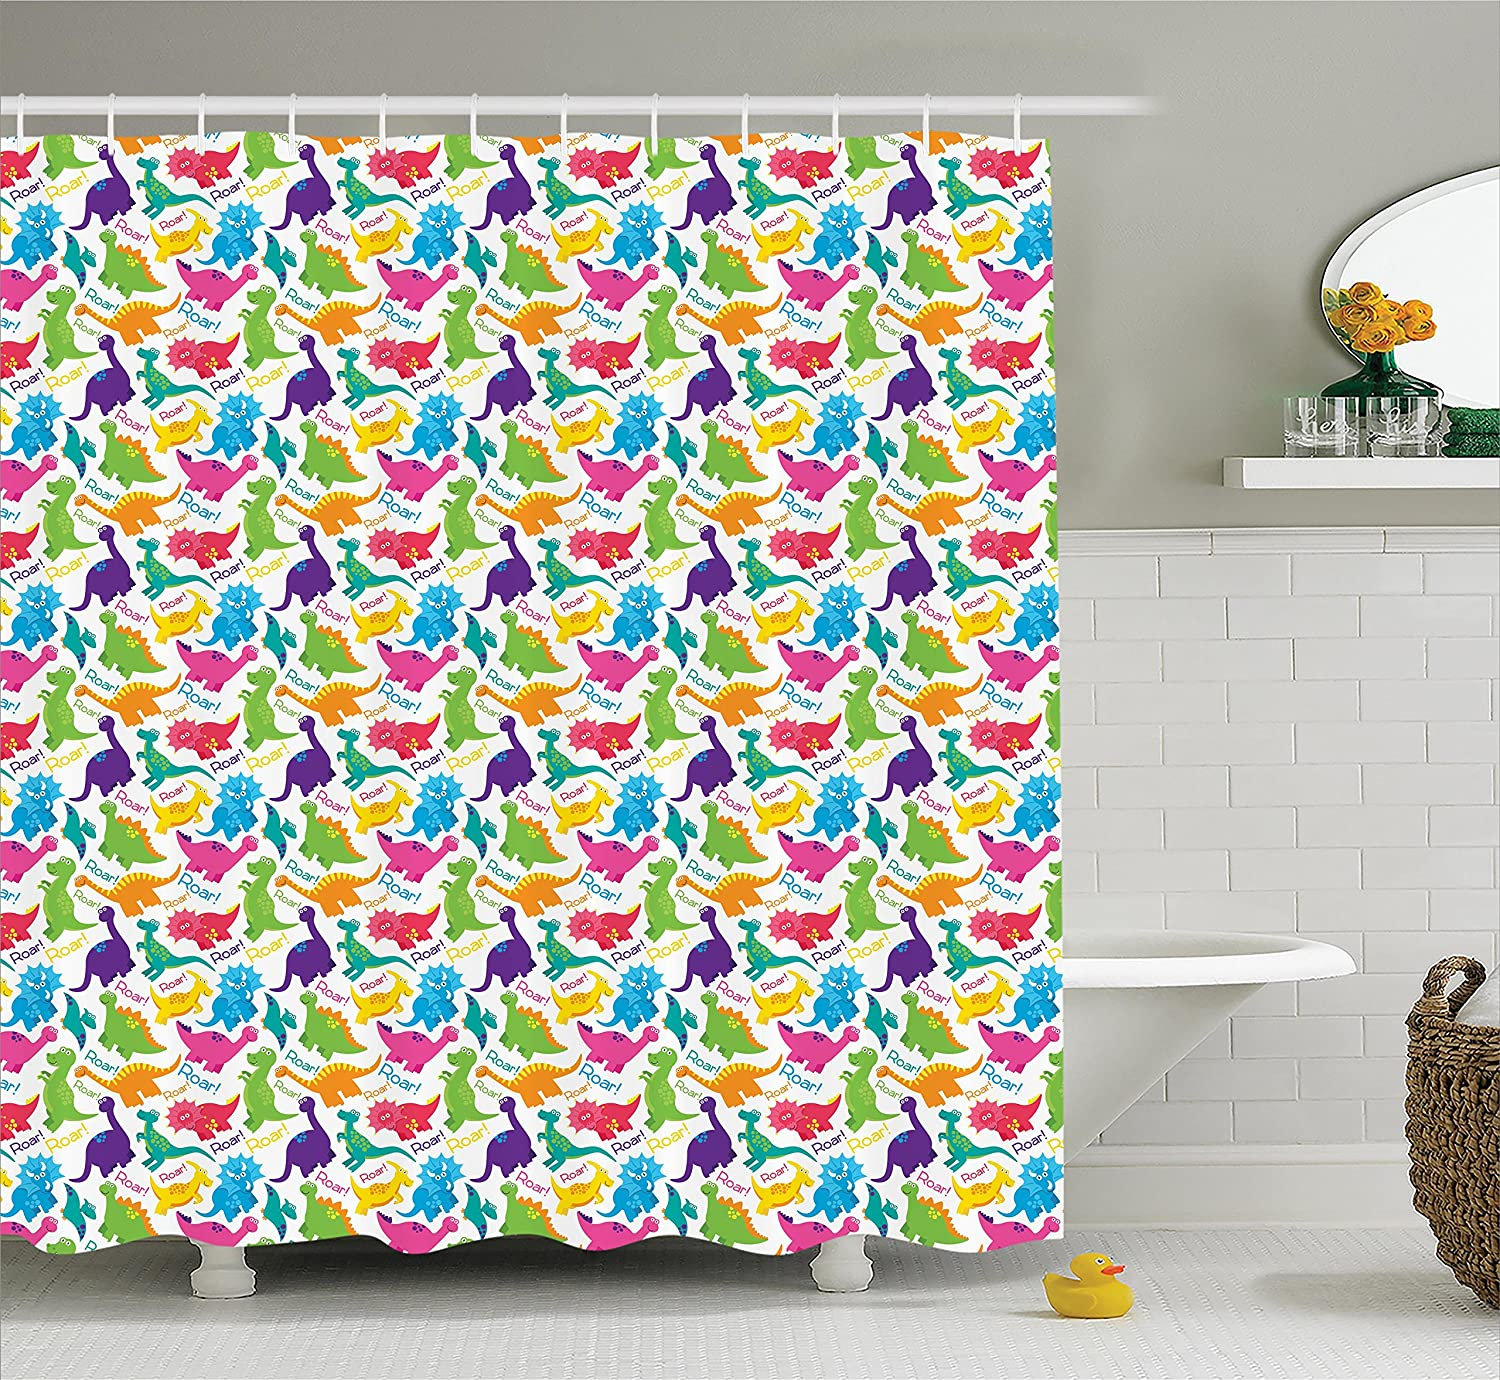 ... Shower Curtain Set By Ambesonne, Ancient Papyrus Presenting The Key Of  Life Traditional Empire Egyptian Print, Bathroom Accessories, 75 Inches Long,  ...